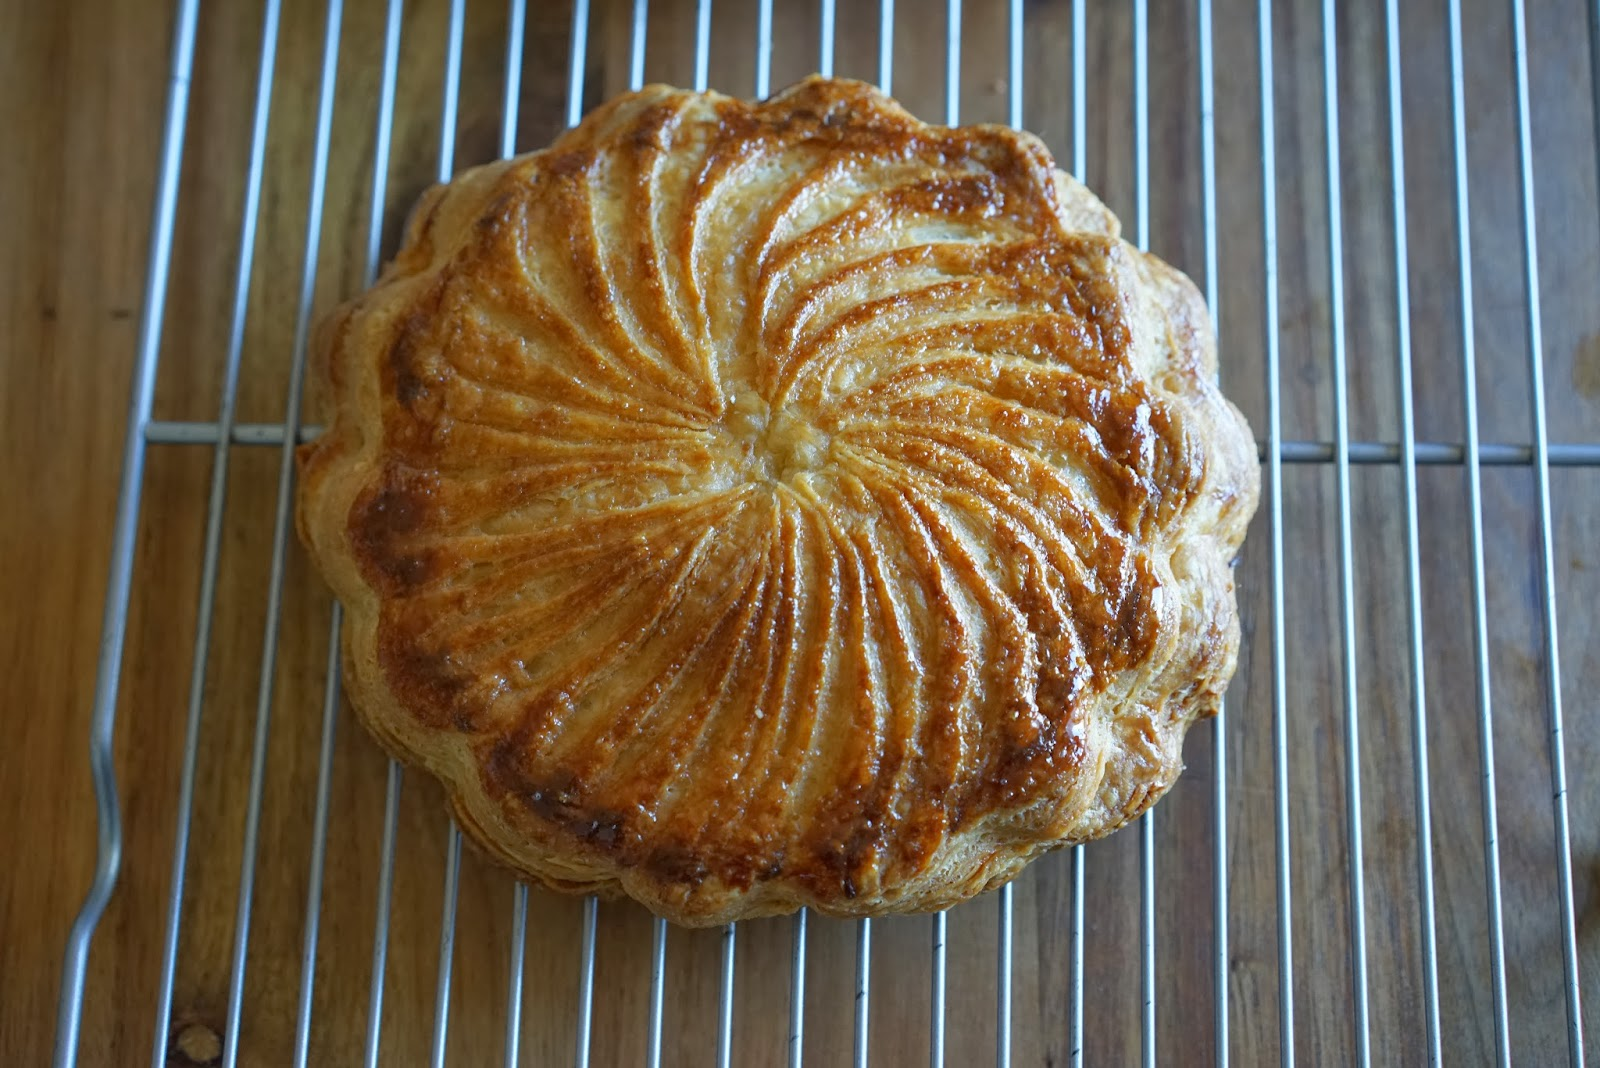 Galette des rois - French Kings Cake - Pithiviers | Chef Rachida